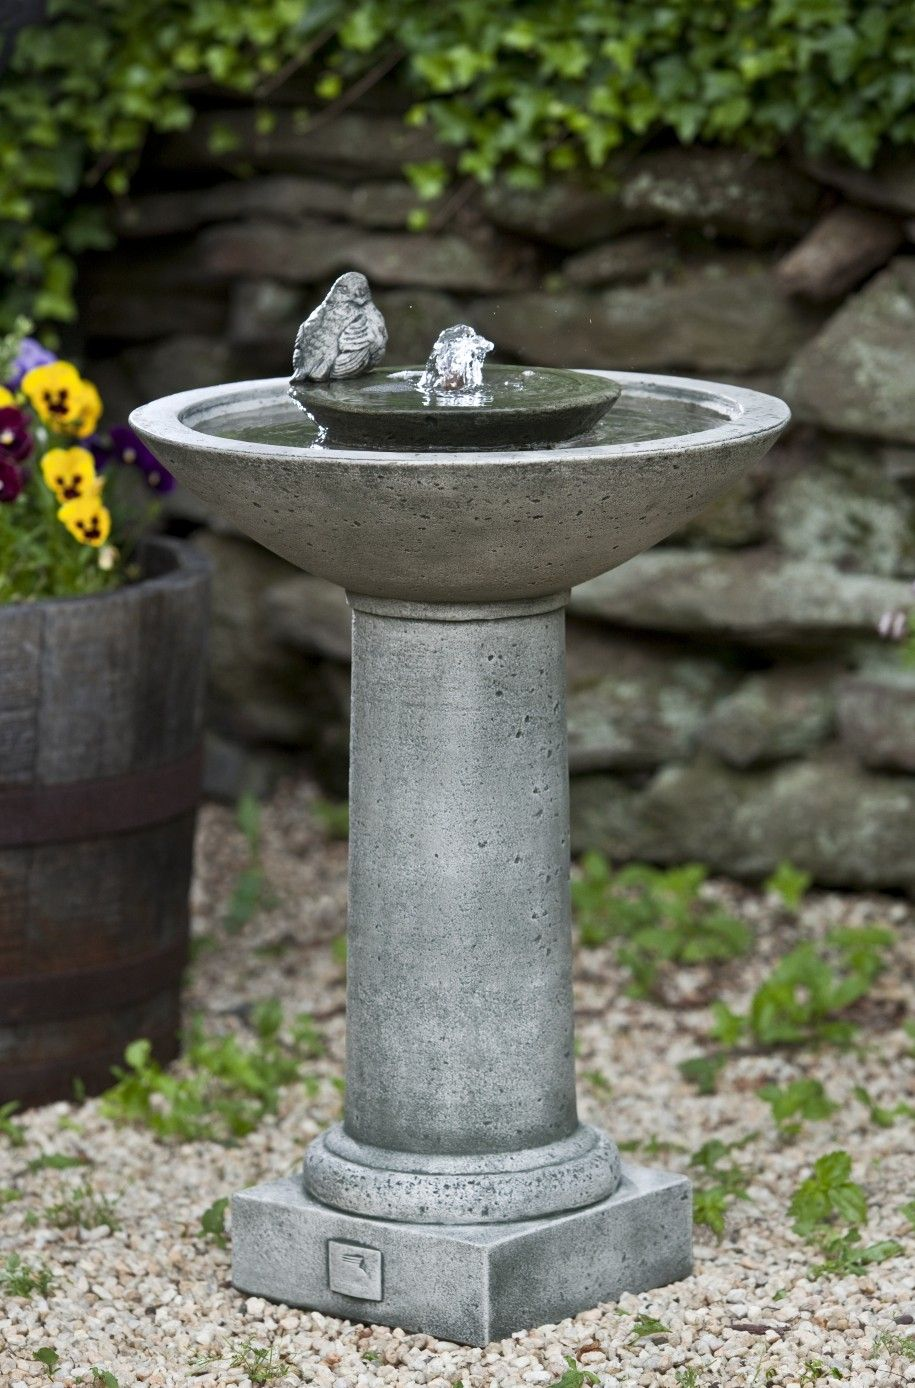 Fabulous Concrete Stone Bird Bath Design With Water Fountain Bowl Standing  With Pedestal On